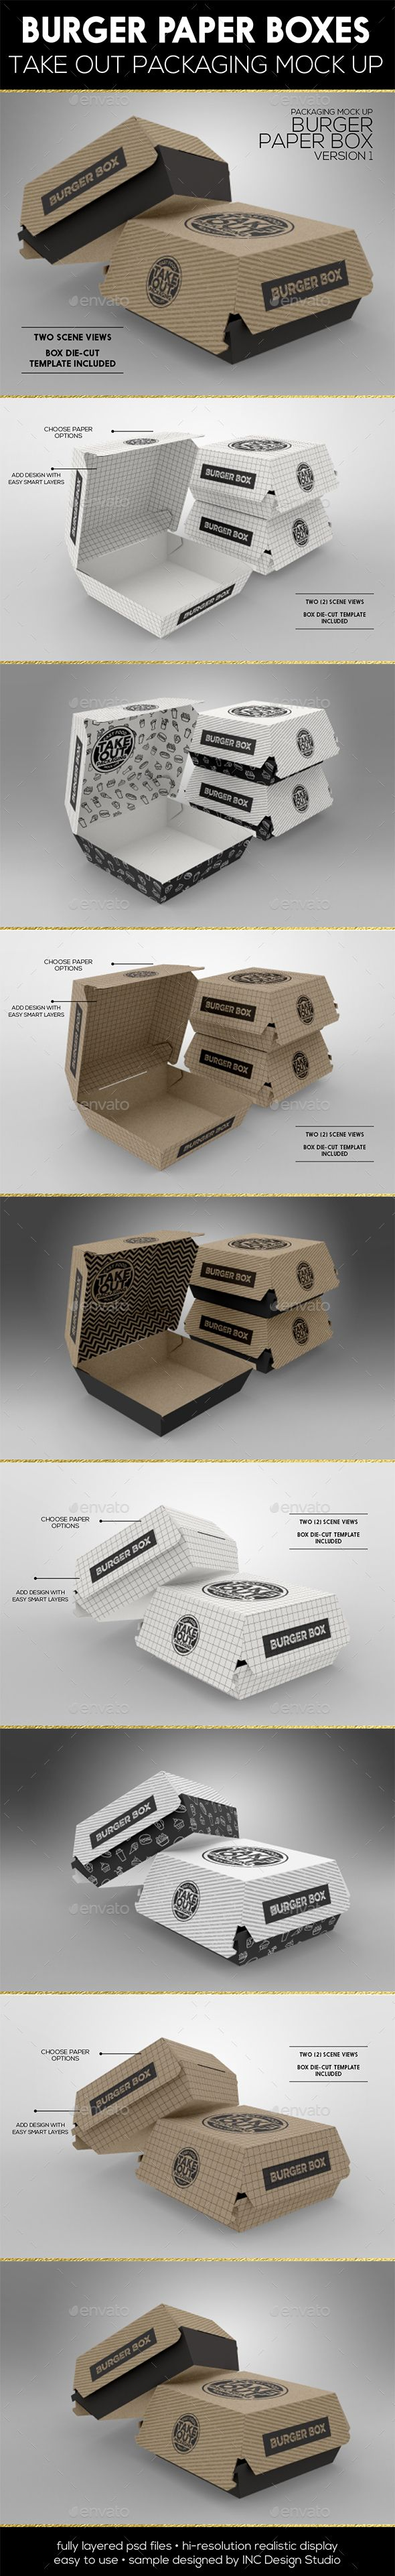 Burger Box Packaging #Mock Up - Food and Drink #Packaging Download here: https://graphicriver.net/item/burger-box-packaging-mock-up/19575562?ref=alena994